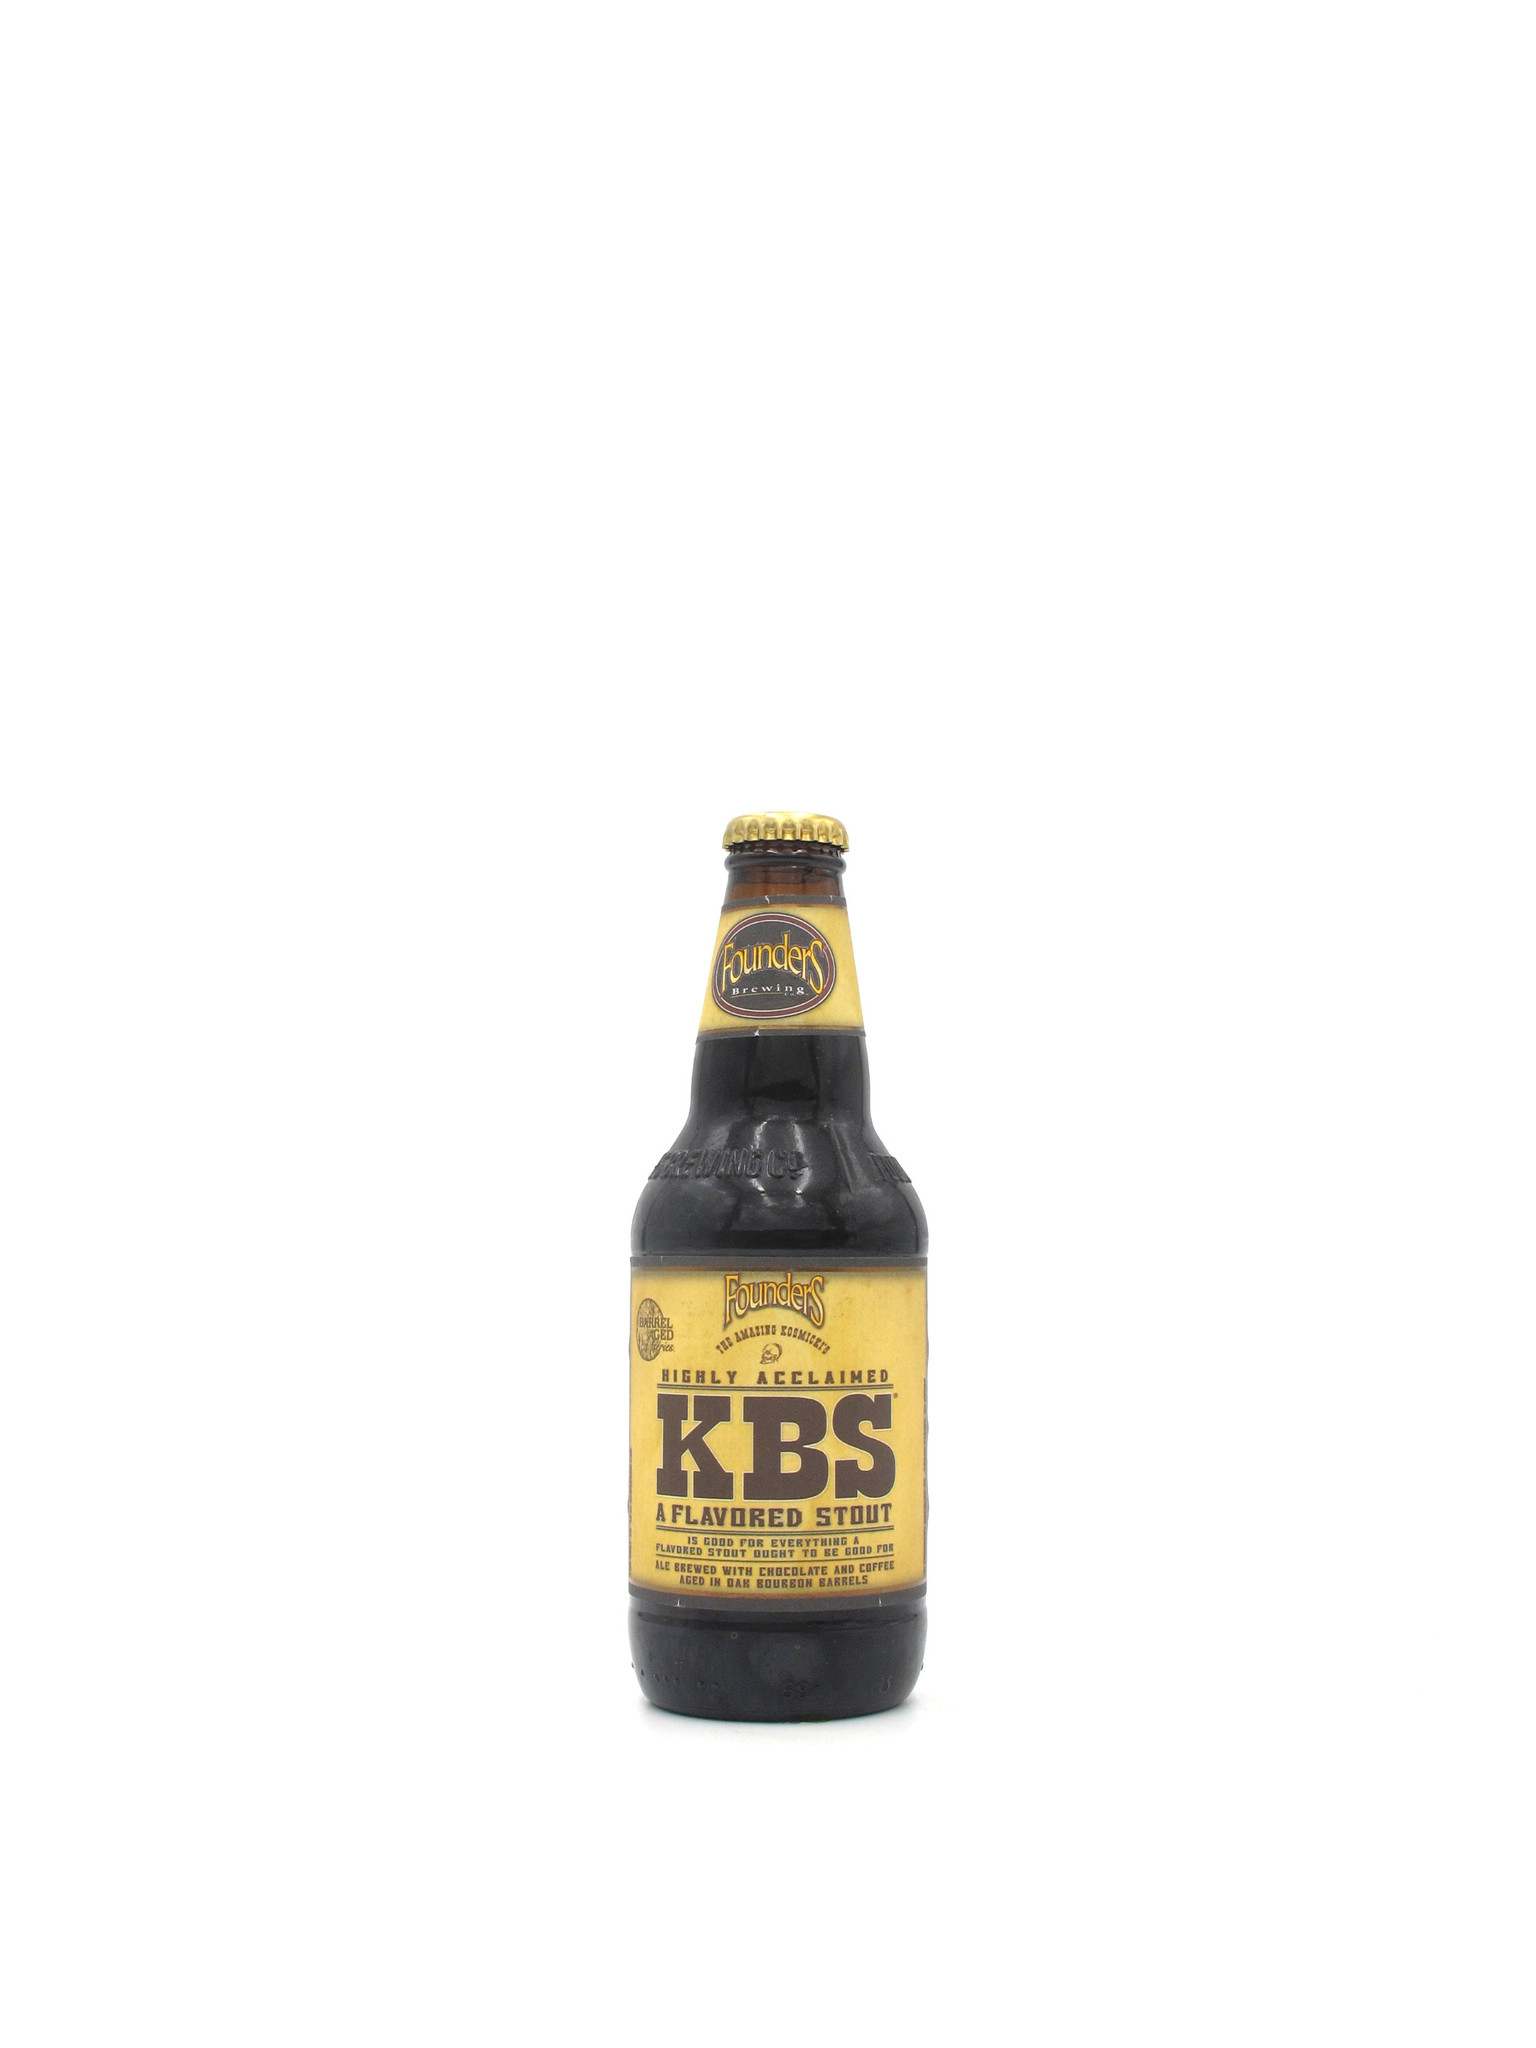 Founders Brewing Founder's Brewing Co. KBS 12oz